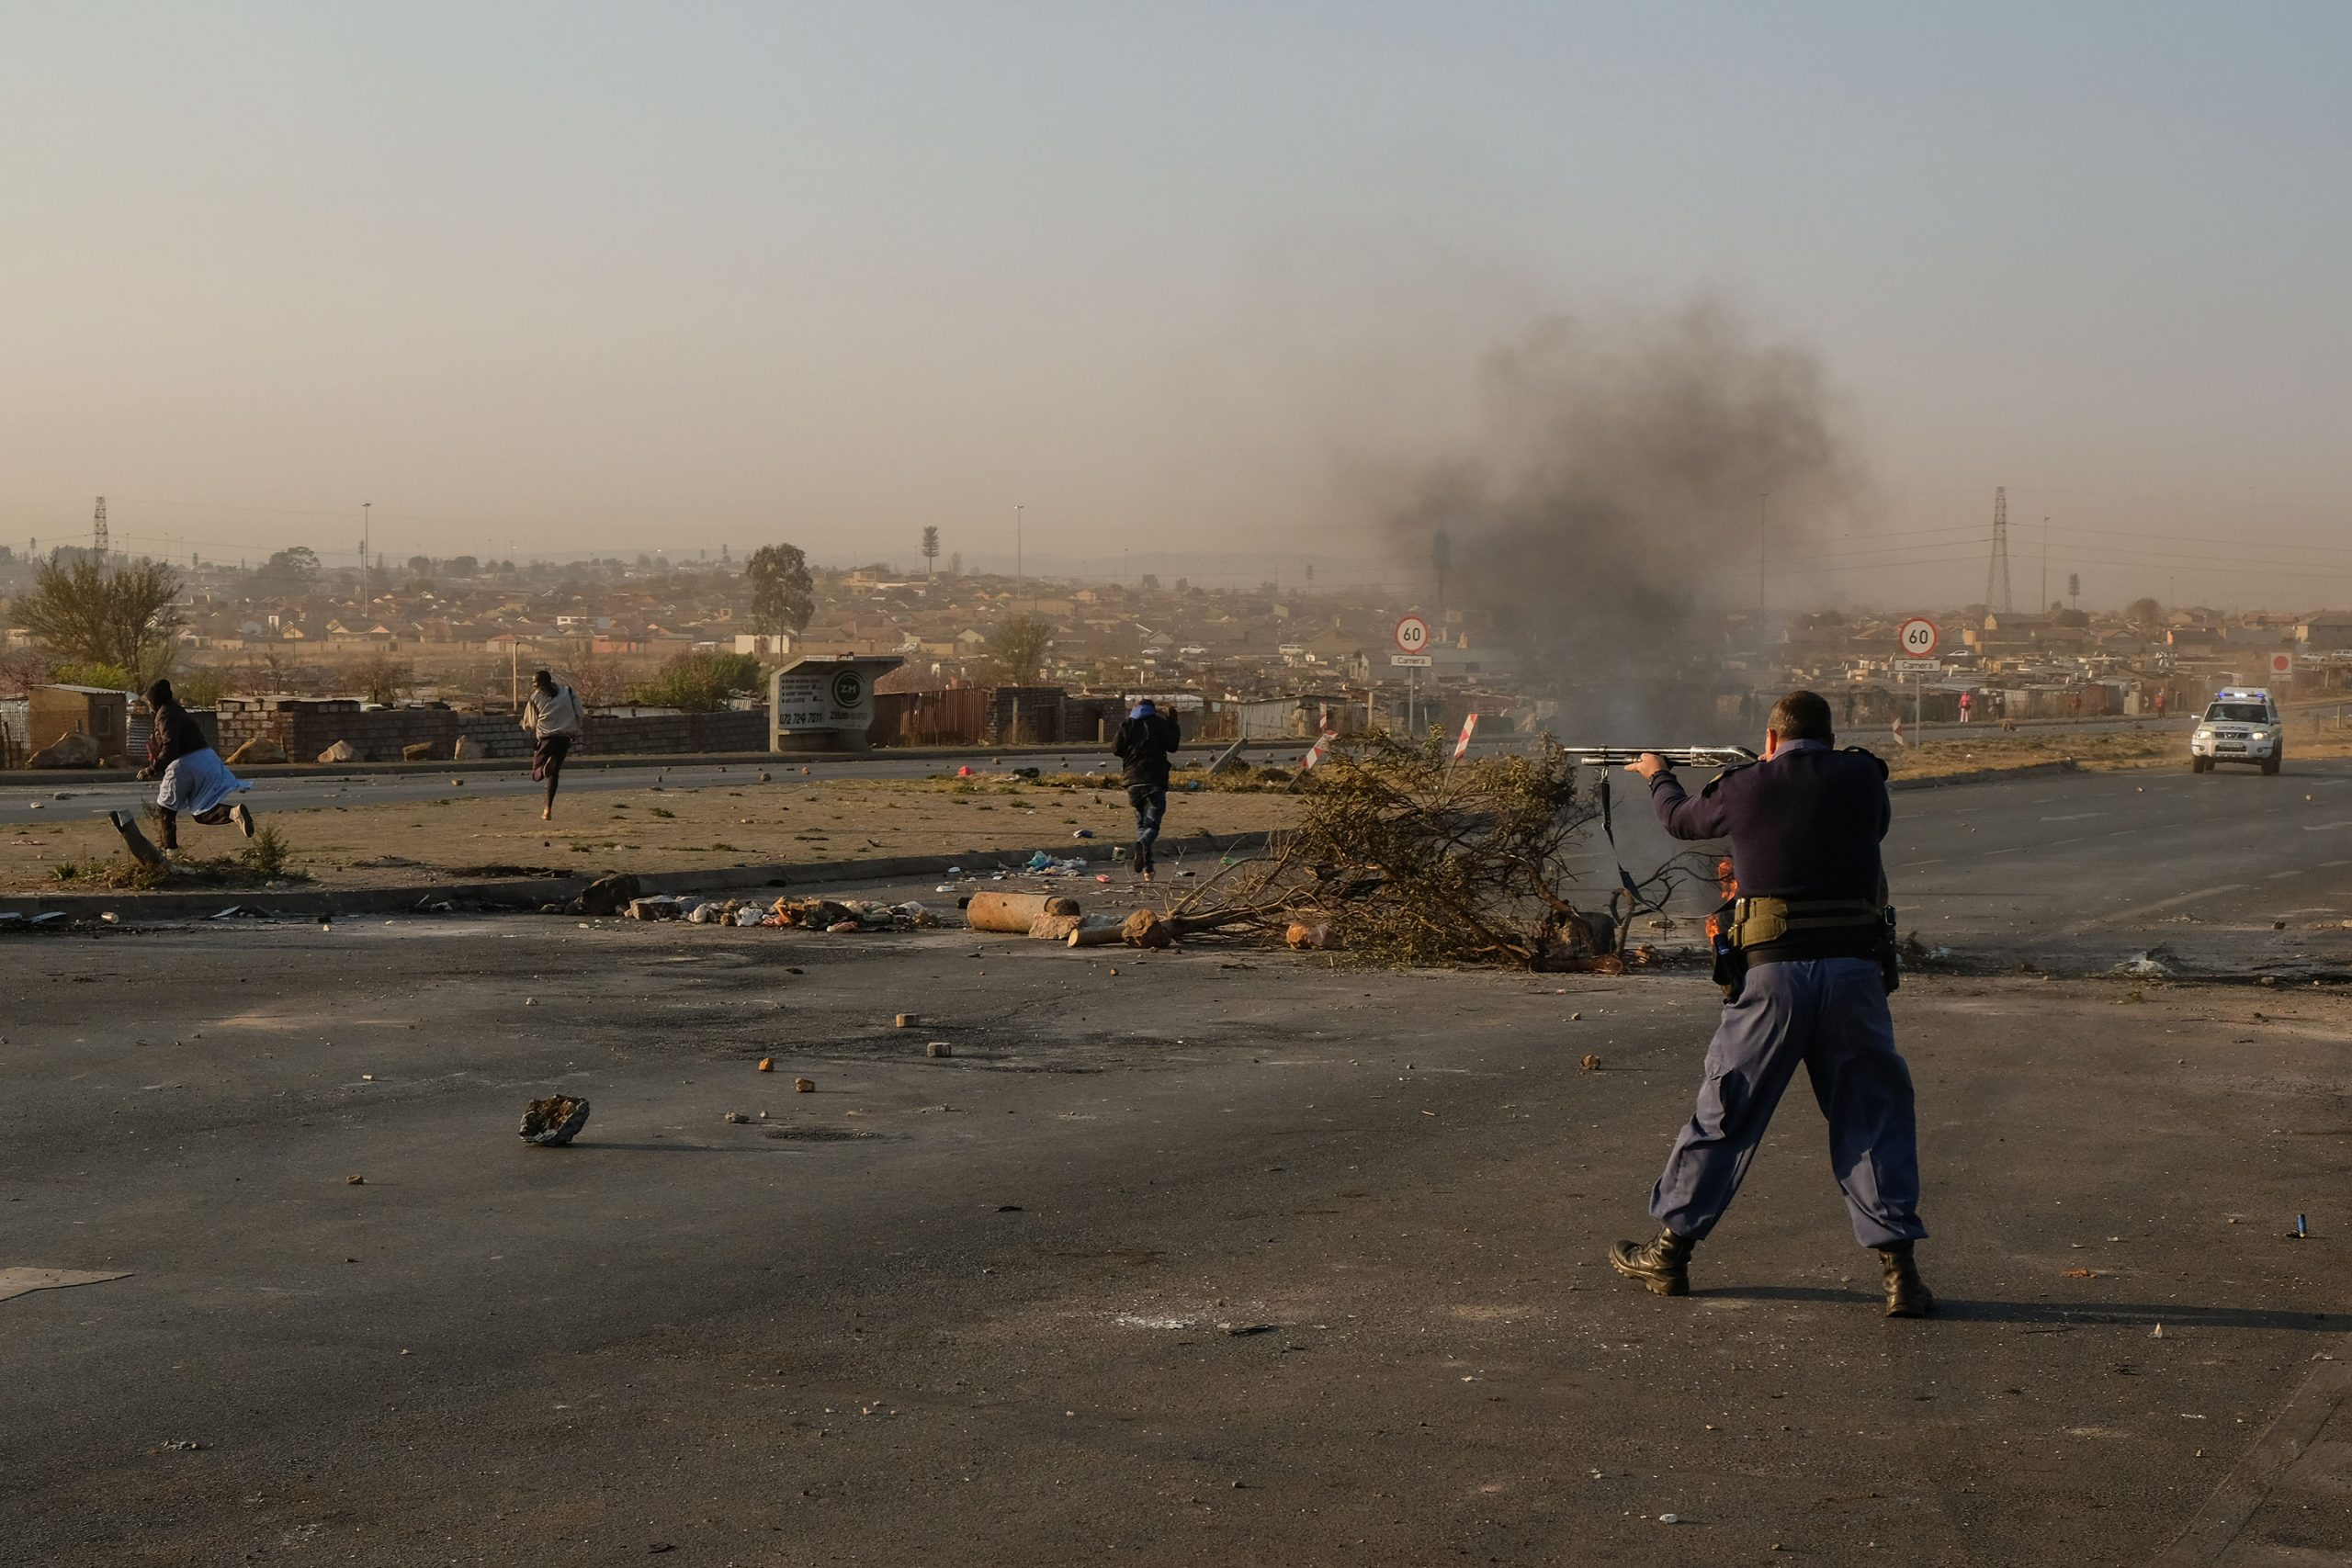 25 August 2020: A South African Police Service officer fires rubber bullets at Doornkop residents who were protesting against the lack of electricity in their shack settlement.